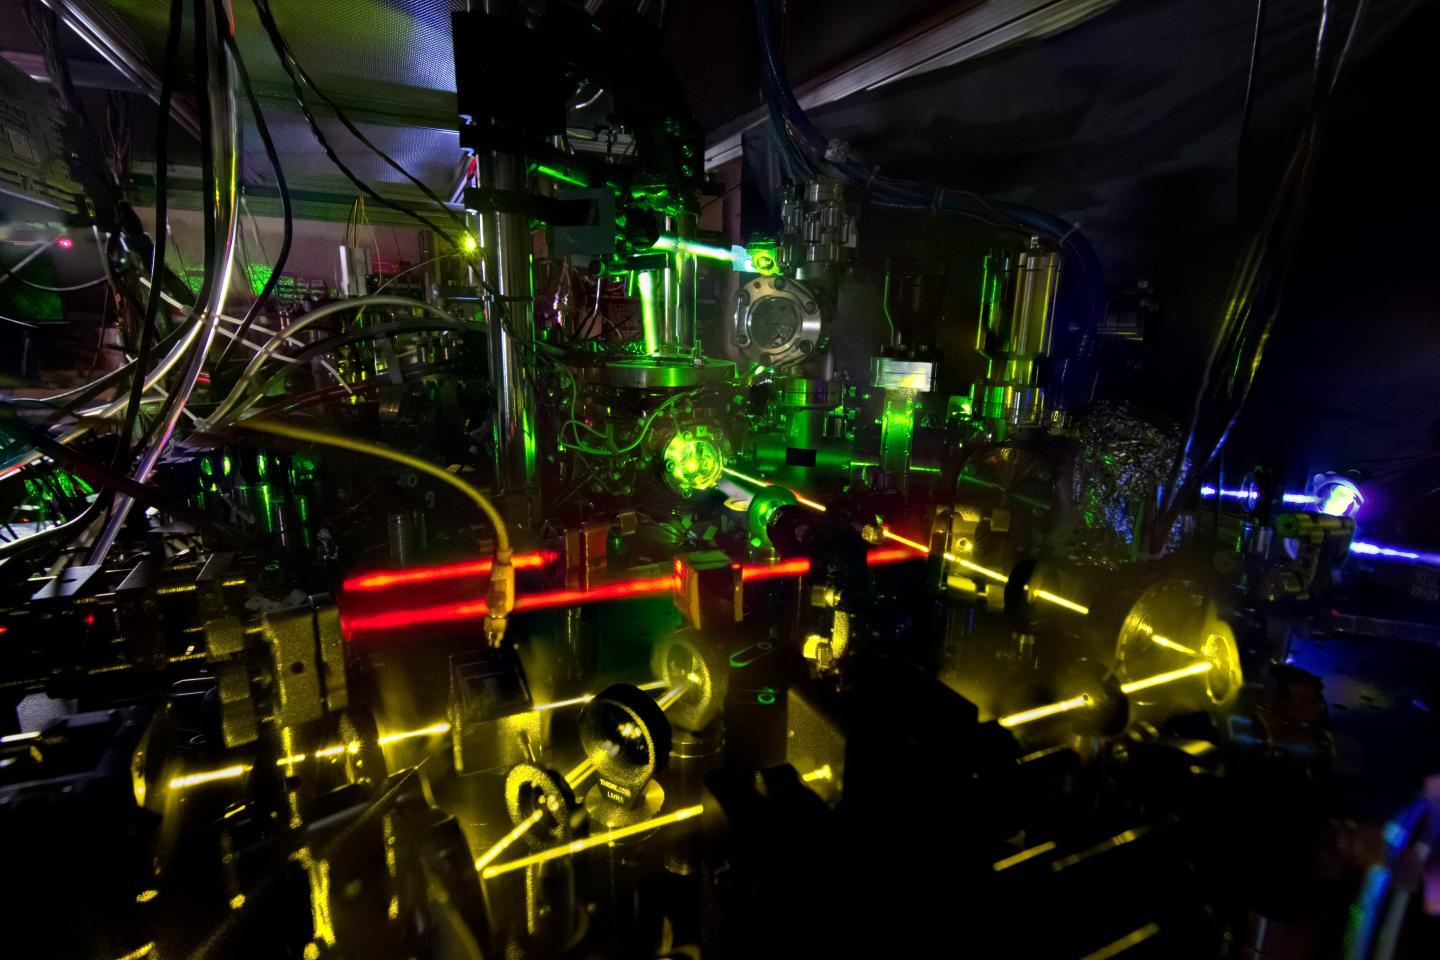 NIST researchers have set a new world record for atomic clock stability using a pair of ytterbium-based timepieces accurate to intervals of quintillionths of a second